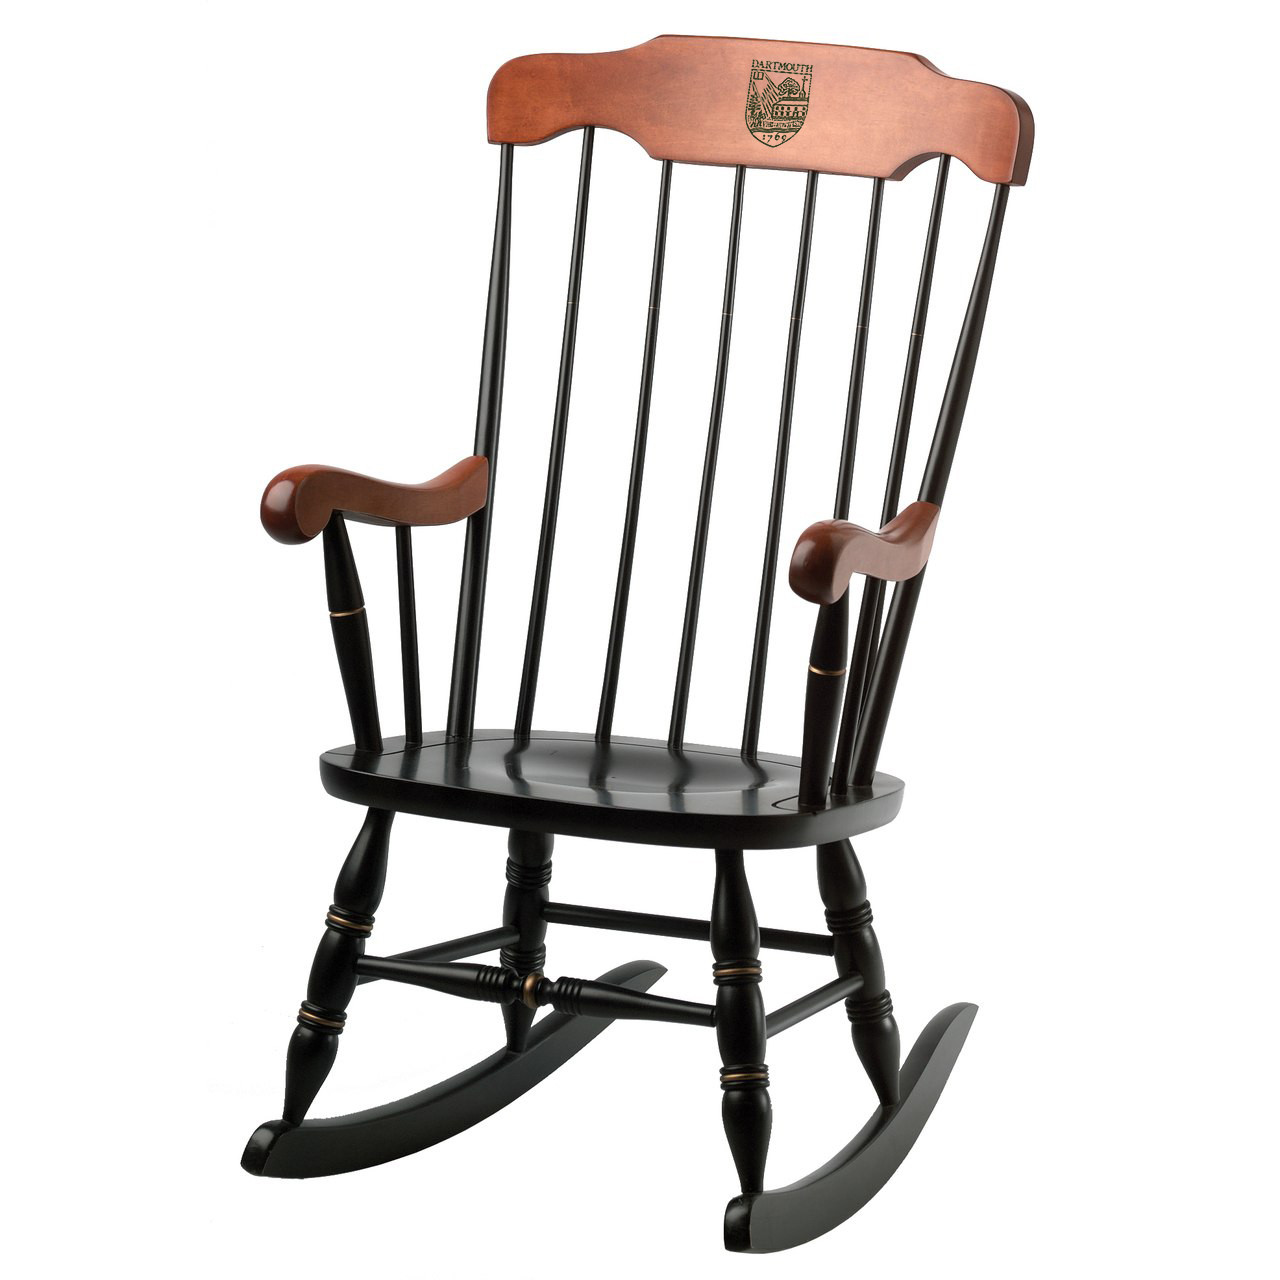 Best Place To Buy Rocking Chairs Dartmouth Rocking Chair Engraved